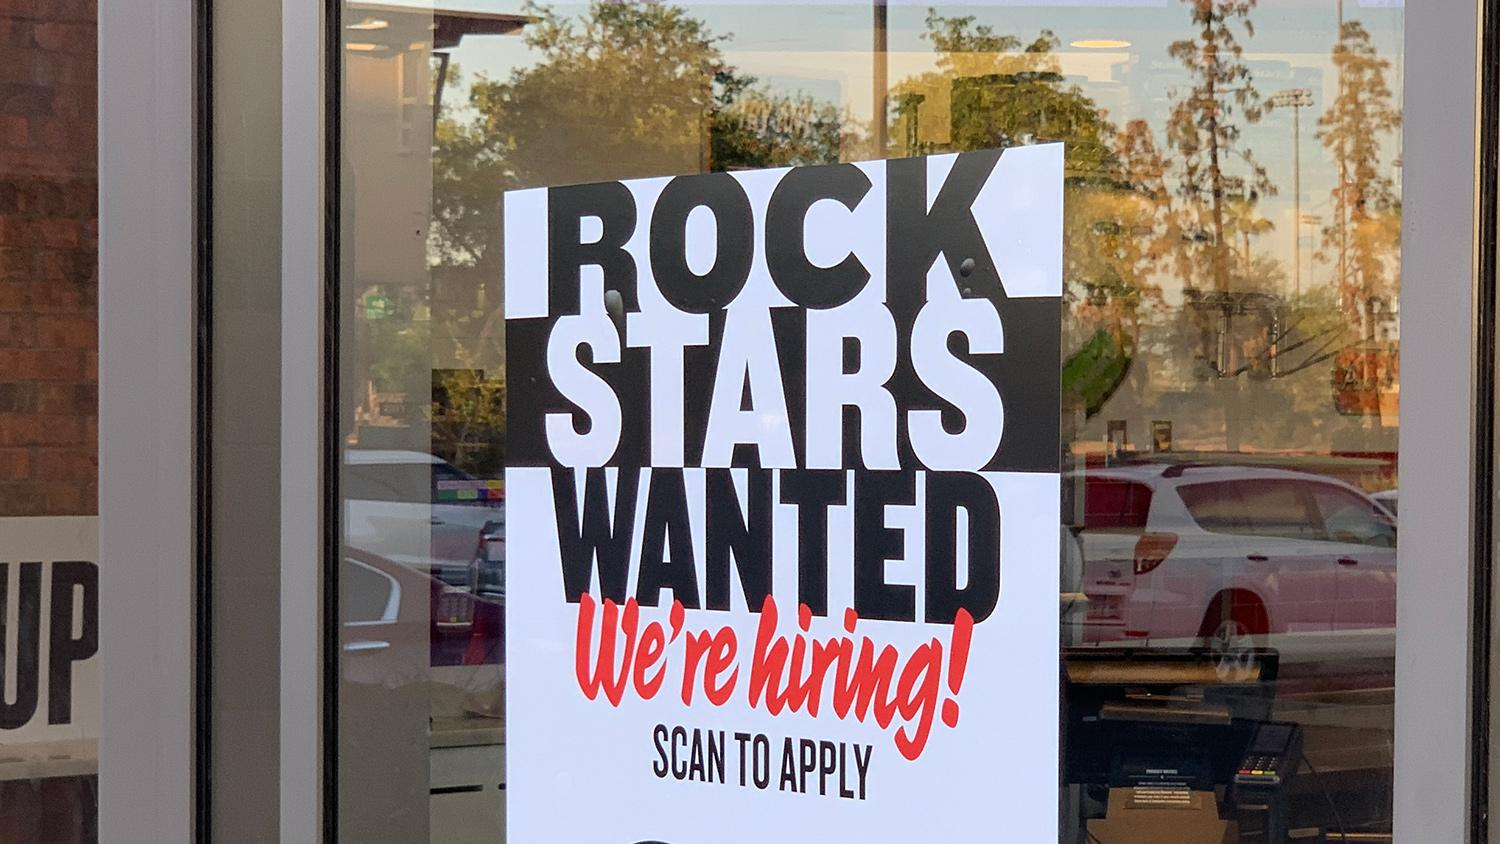 Jimmy Johns Rock Stars Wanted Now Hiring Sign